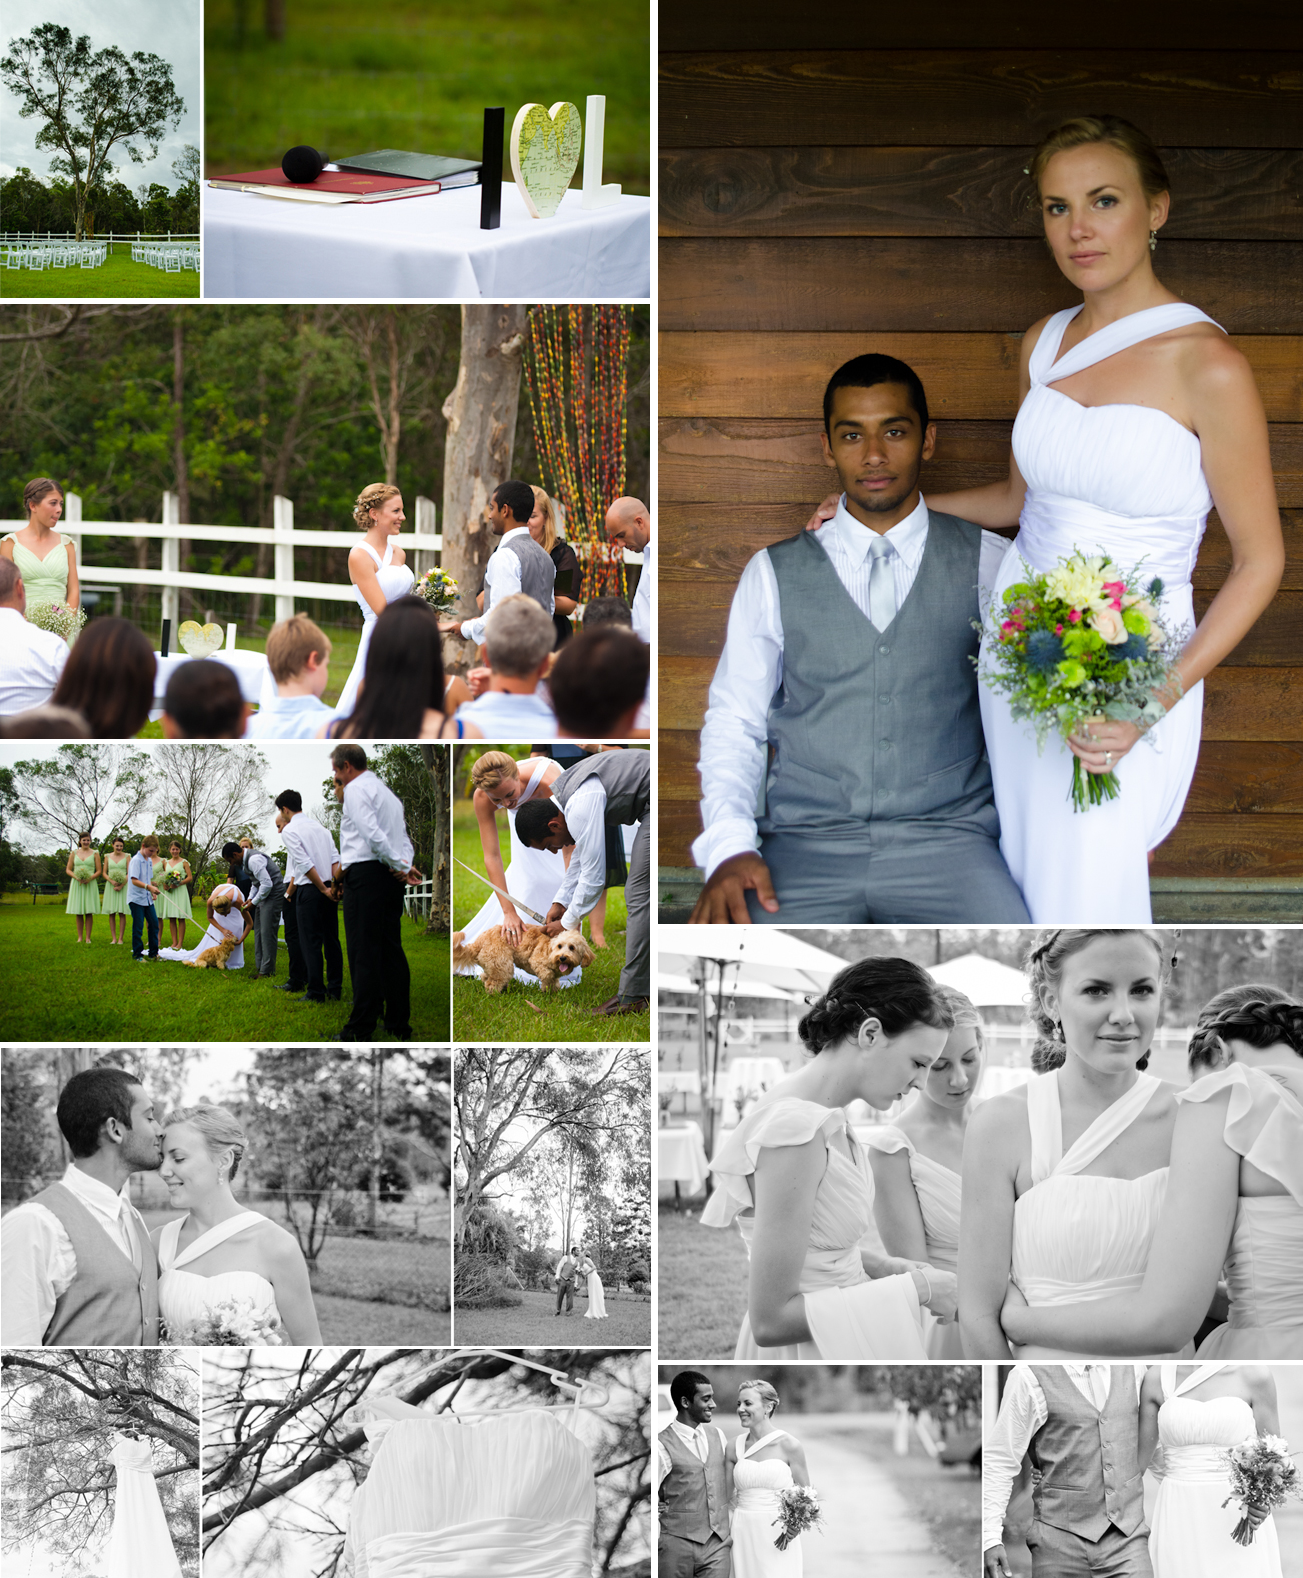 Romantic outdoor wedding simple ceremony onewed com